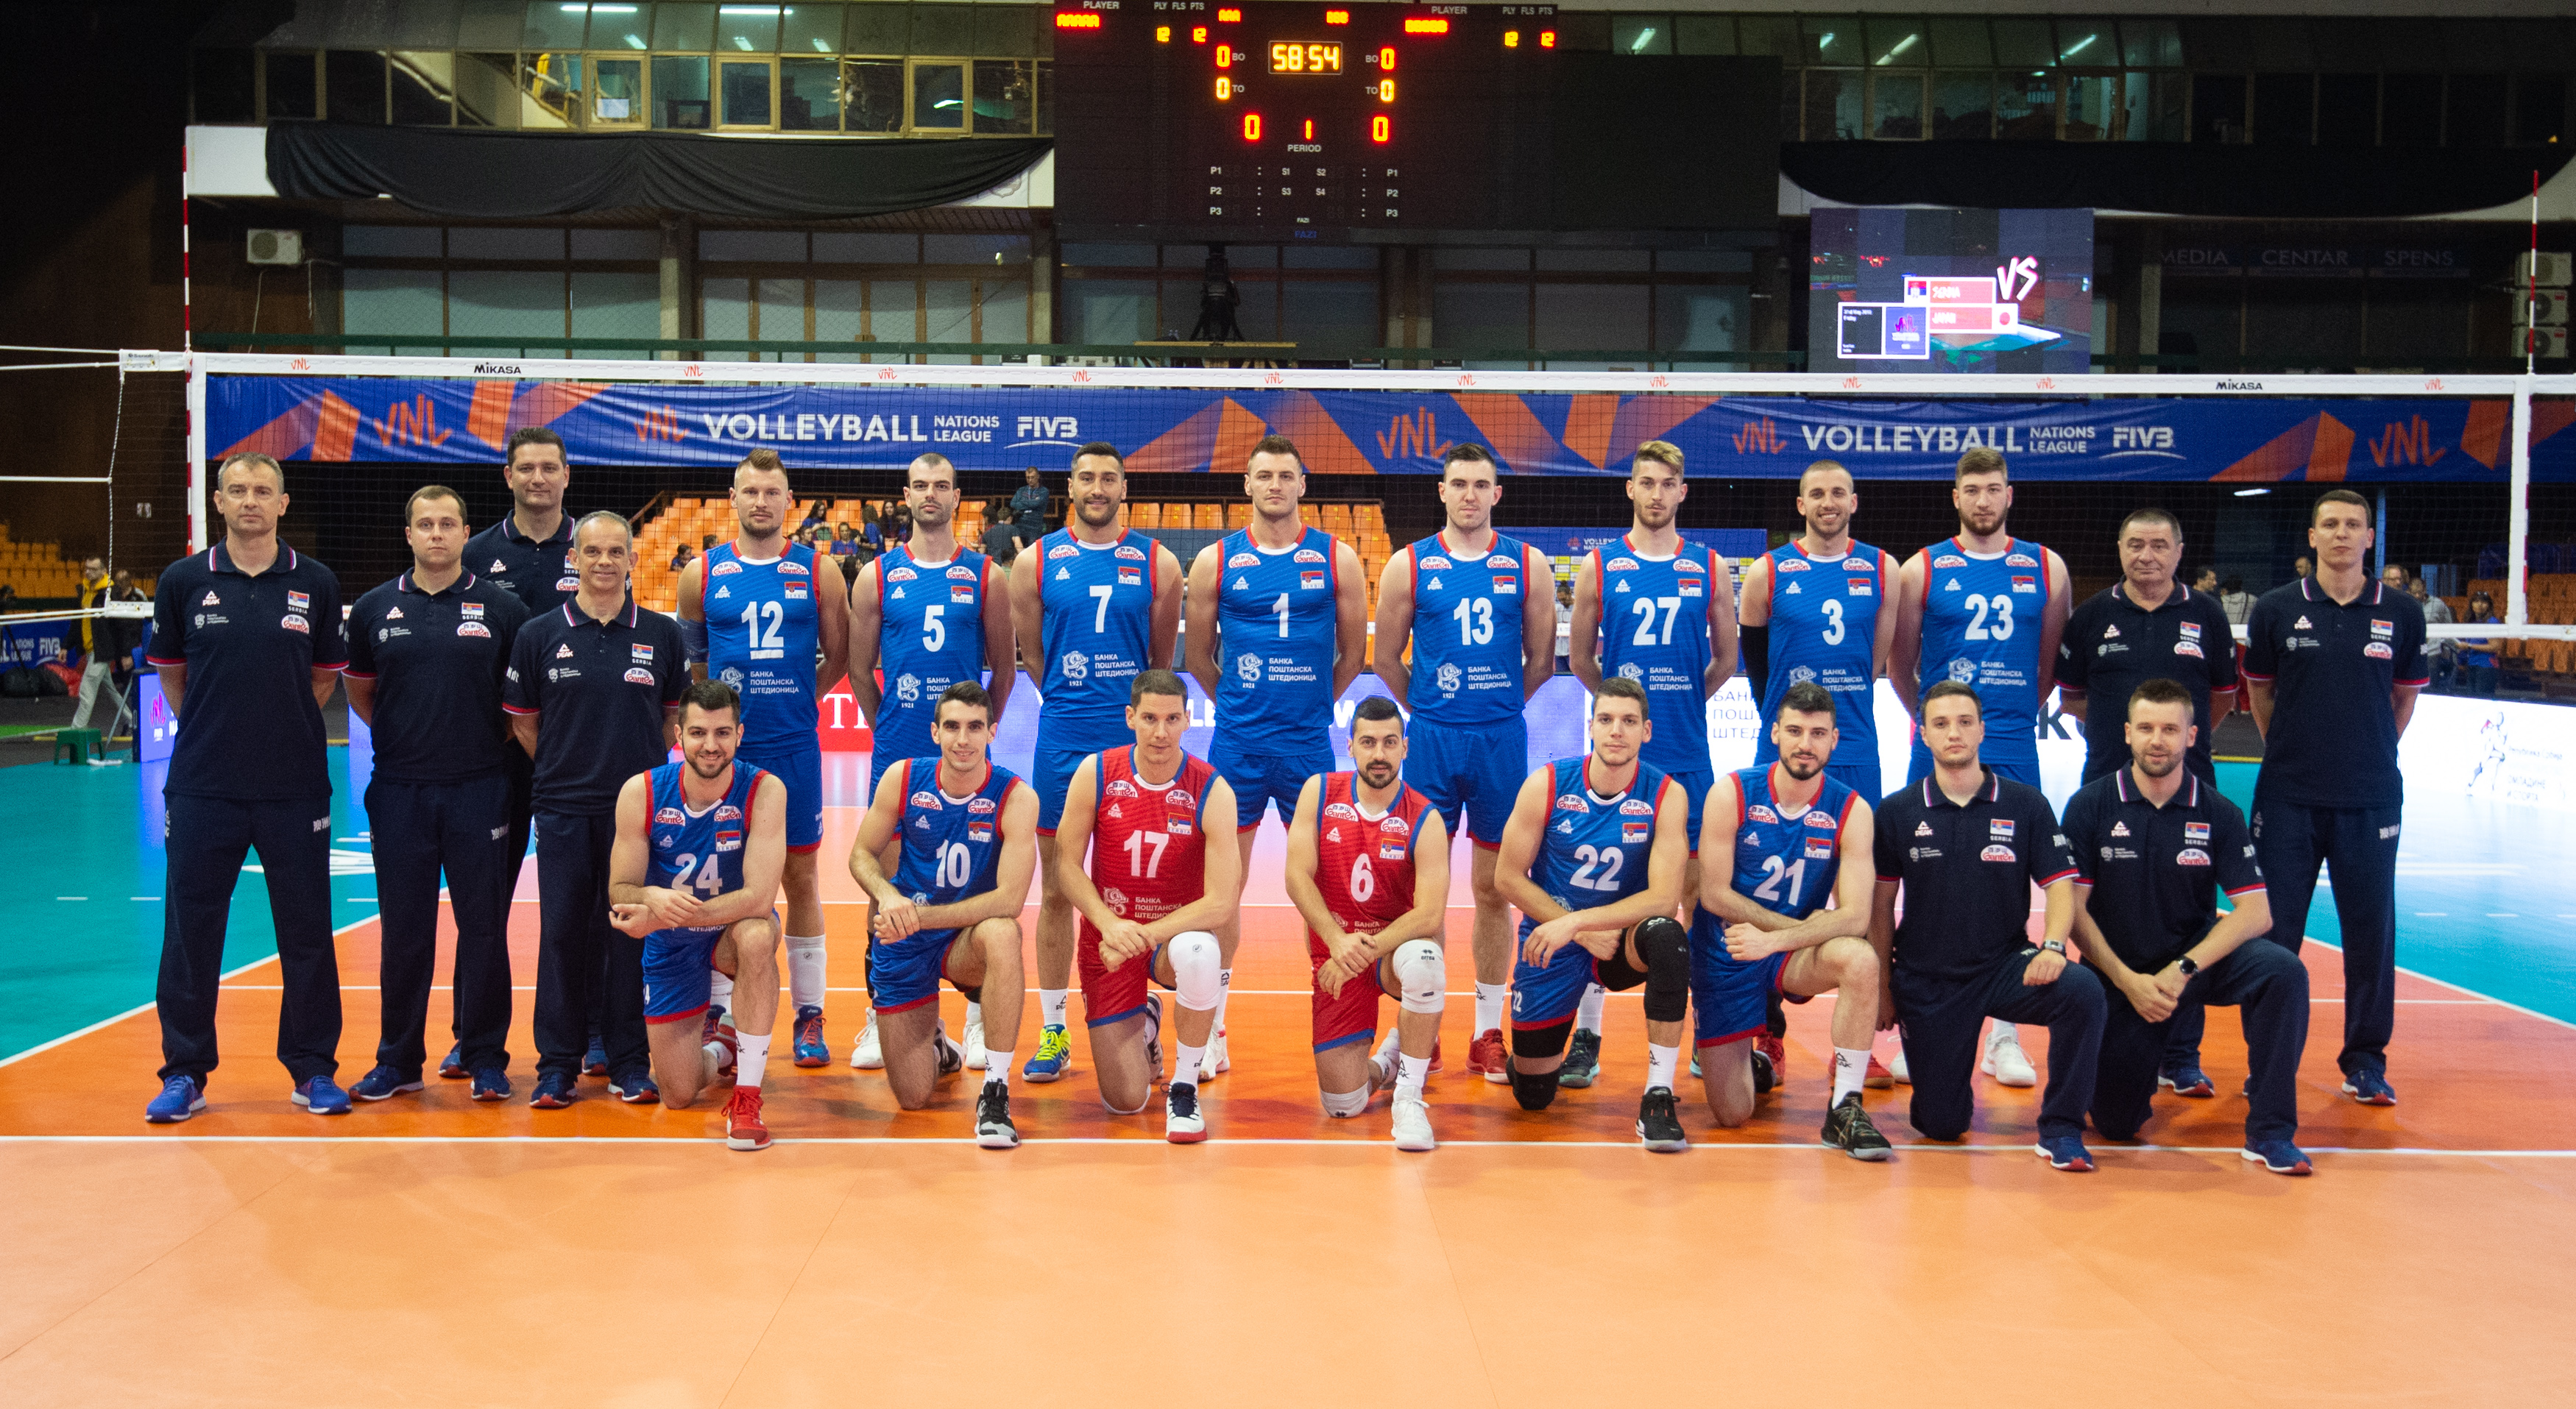 Fivb Volleyball Nations League 2018 Men S Teams Overview Serbia Volleyball Nations League 2021